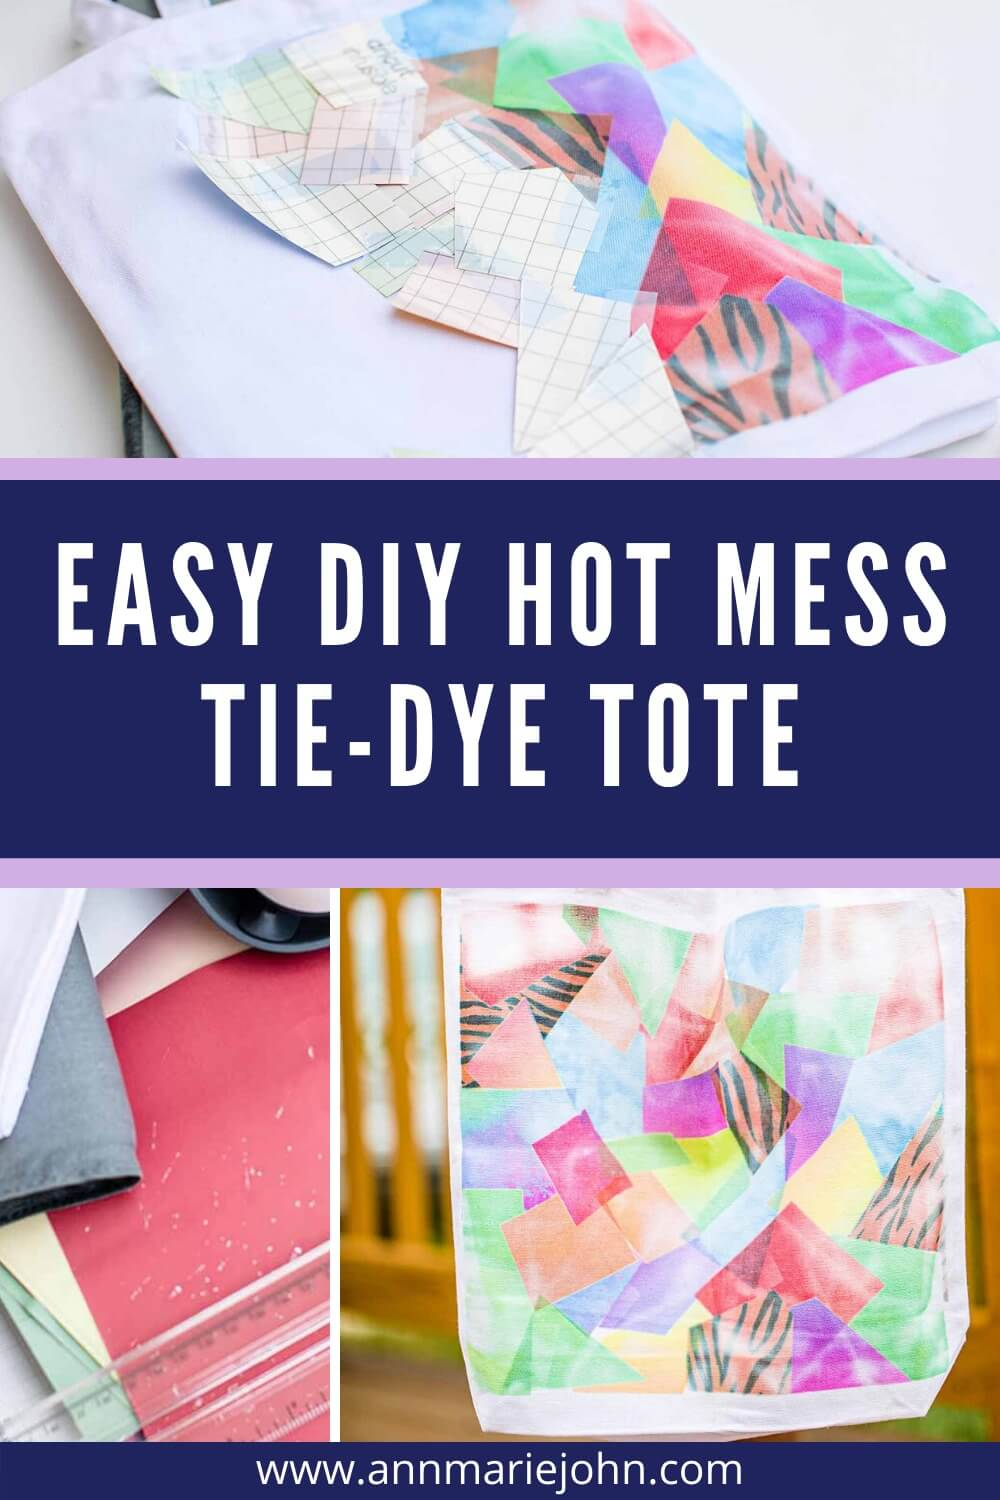 Easy DIY Hot Mess Tie-Dye Tote